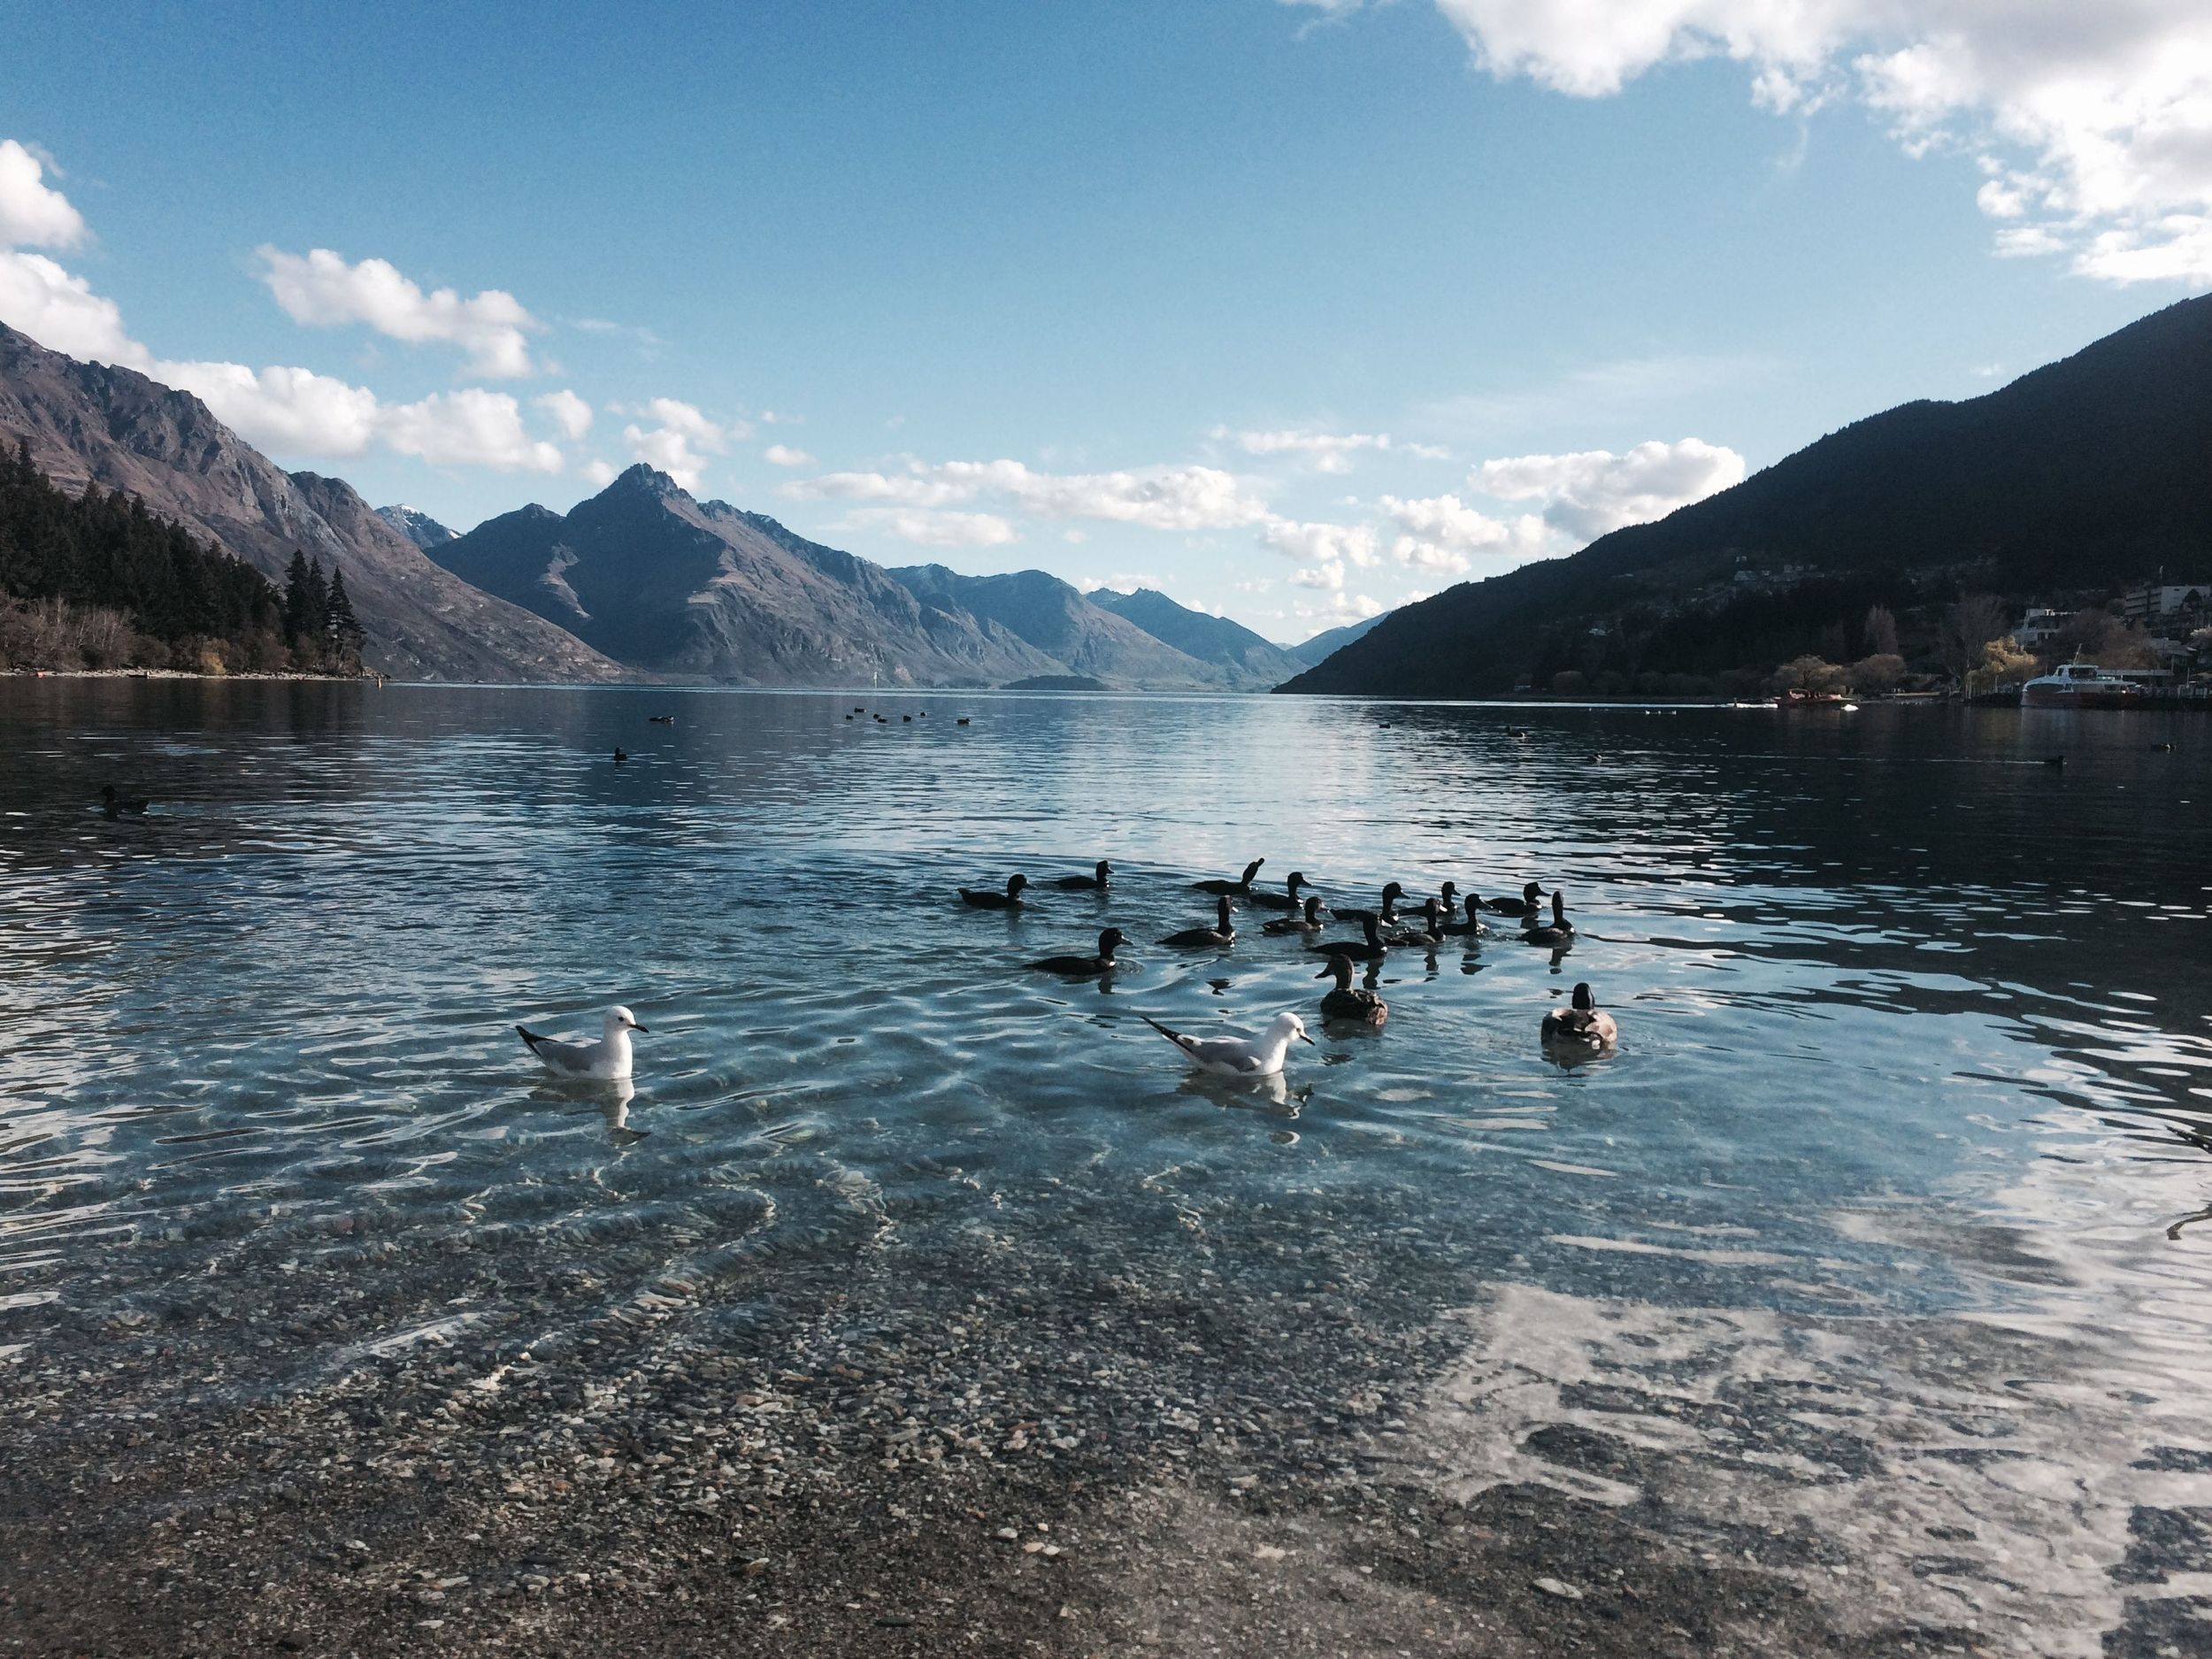 The lake in Queenstown is surrounded by steep mountains. The beach is right on the edge of town and is ringed by swanky pubs and places to eat.